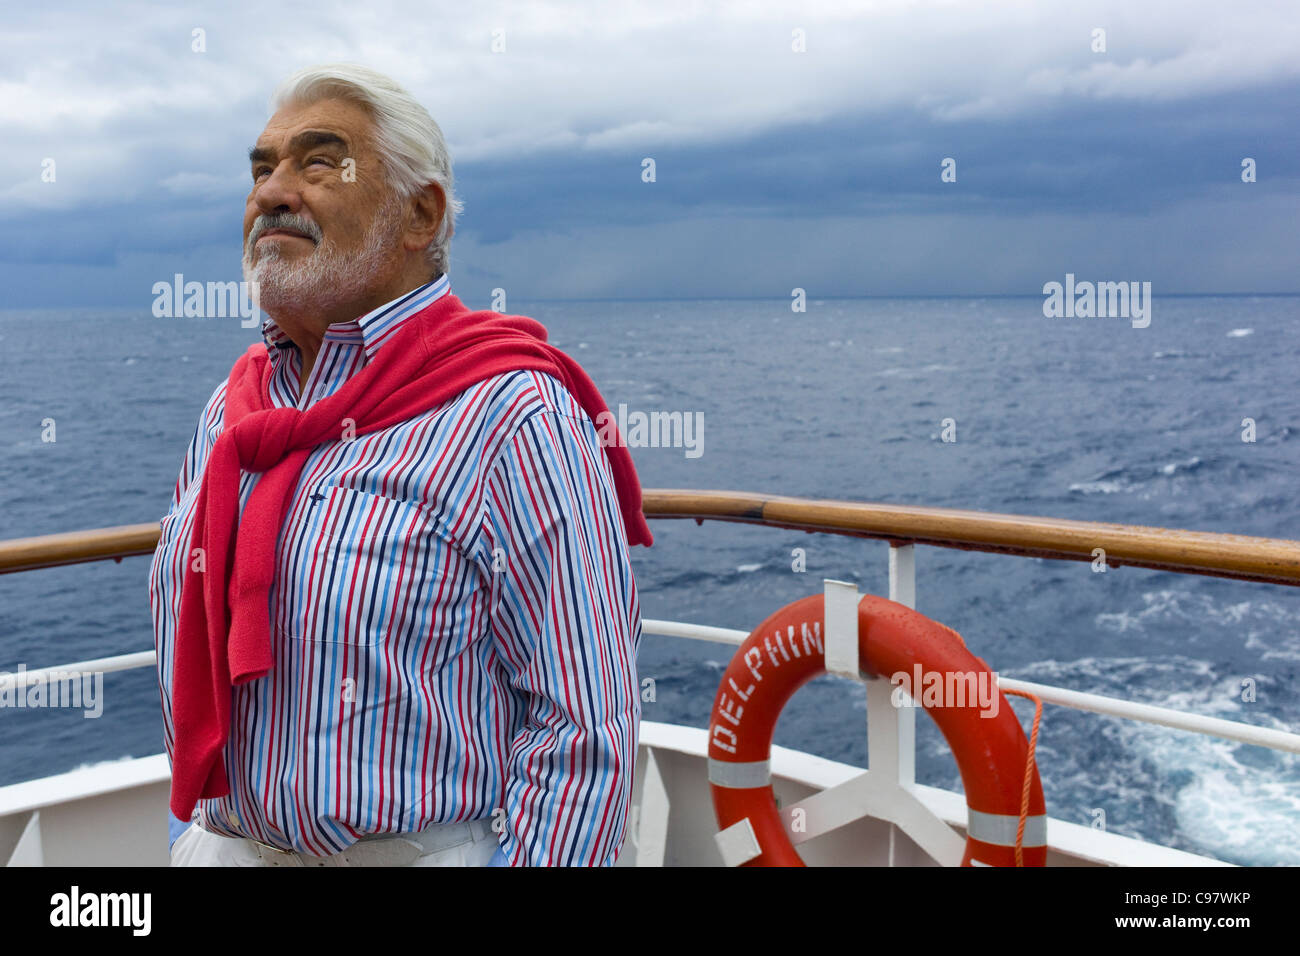 Actor Mario Adorf aboard the cruiseship MS Delphin for the filming of the ARD film Die lange Welle hinterm Kiel - Stock Image